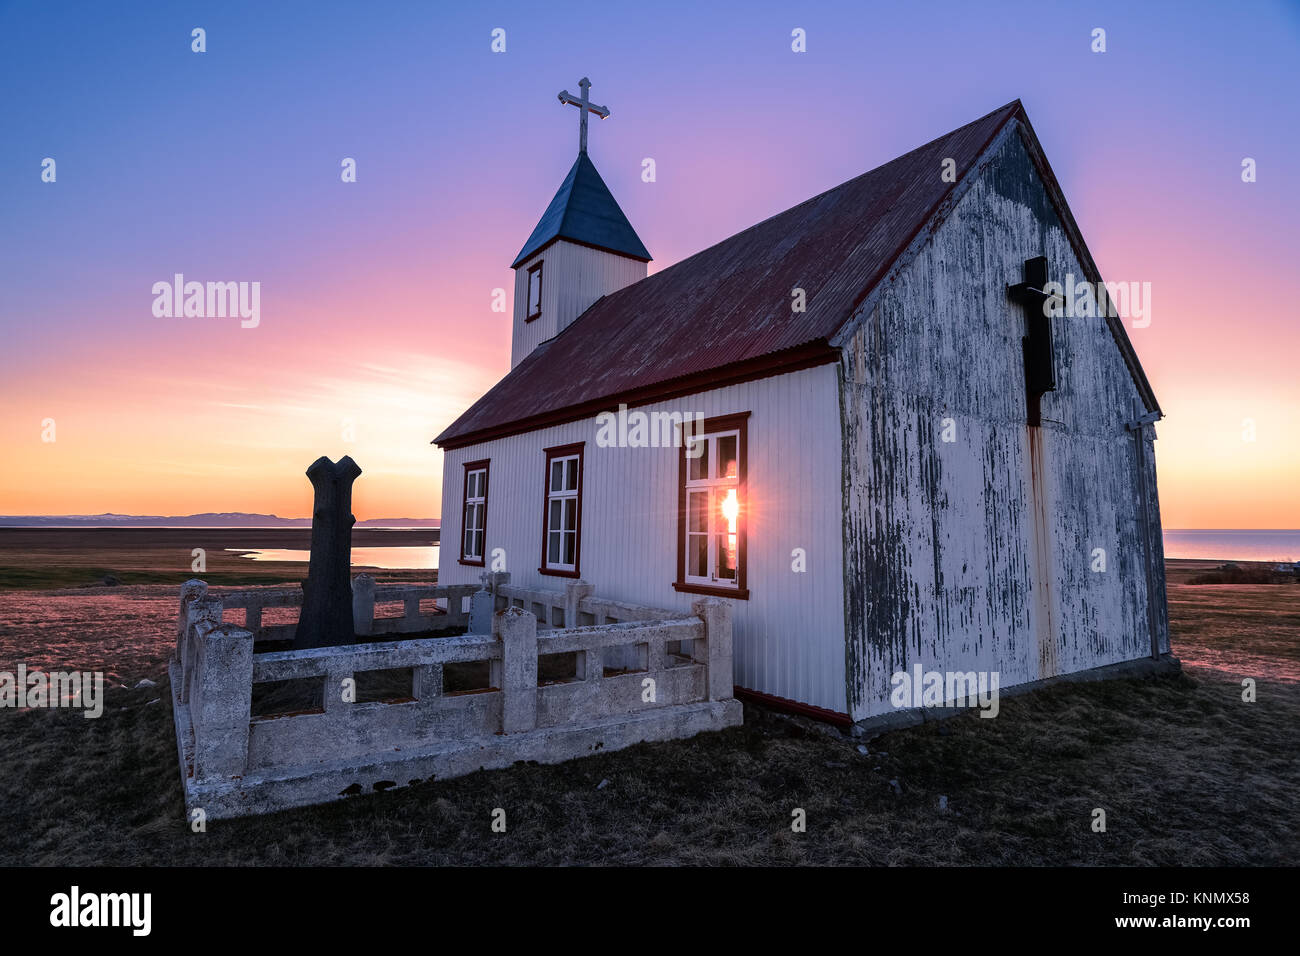 Sun shines through church at sunset in Iceland Stock Photo